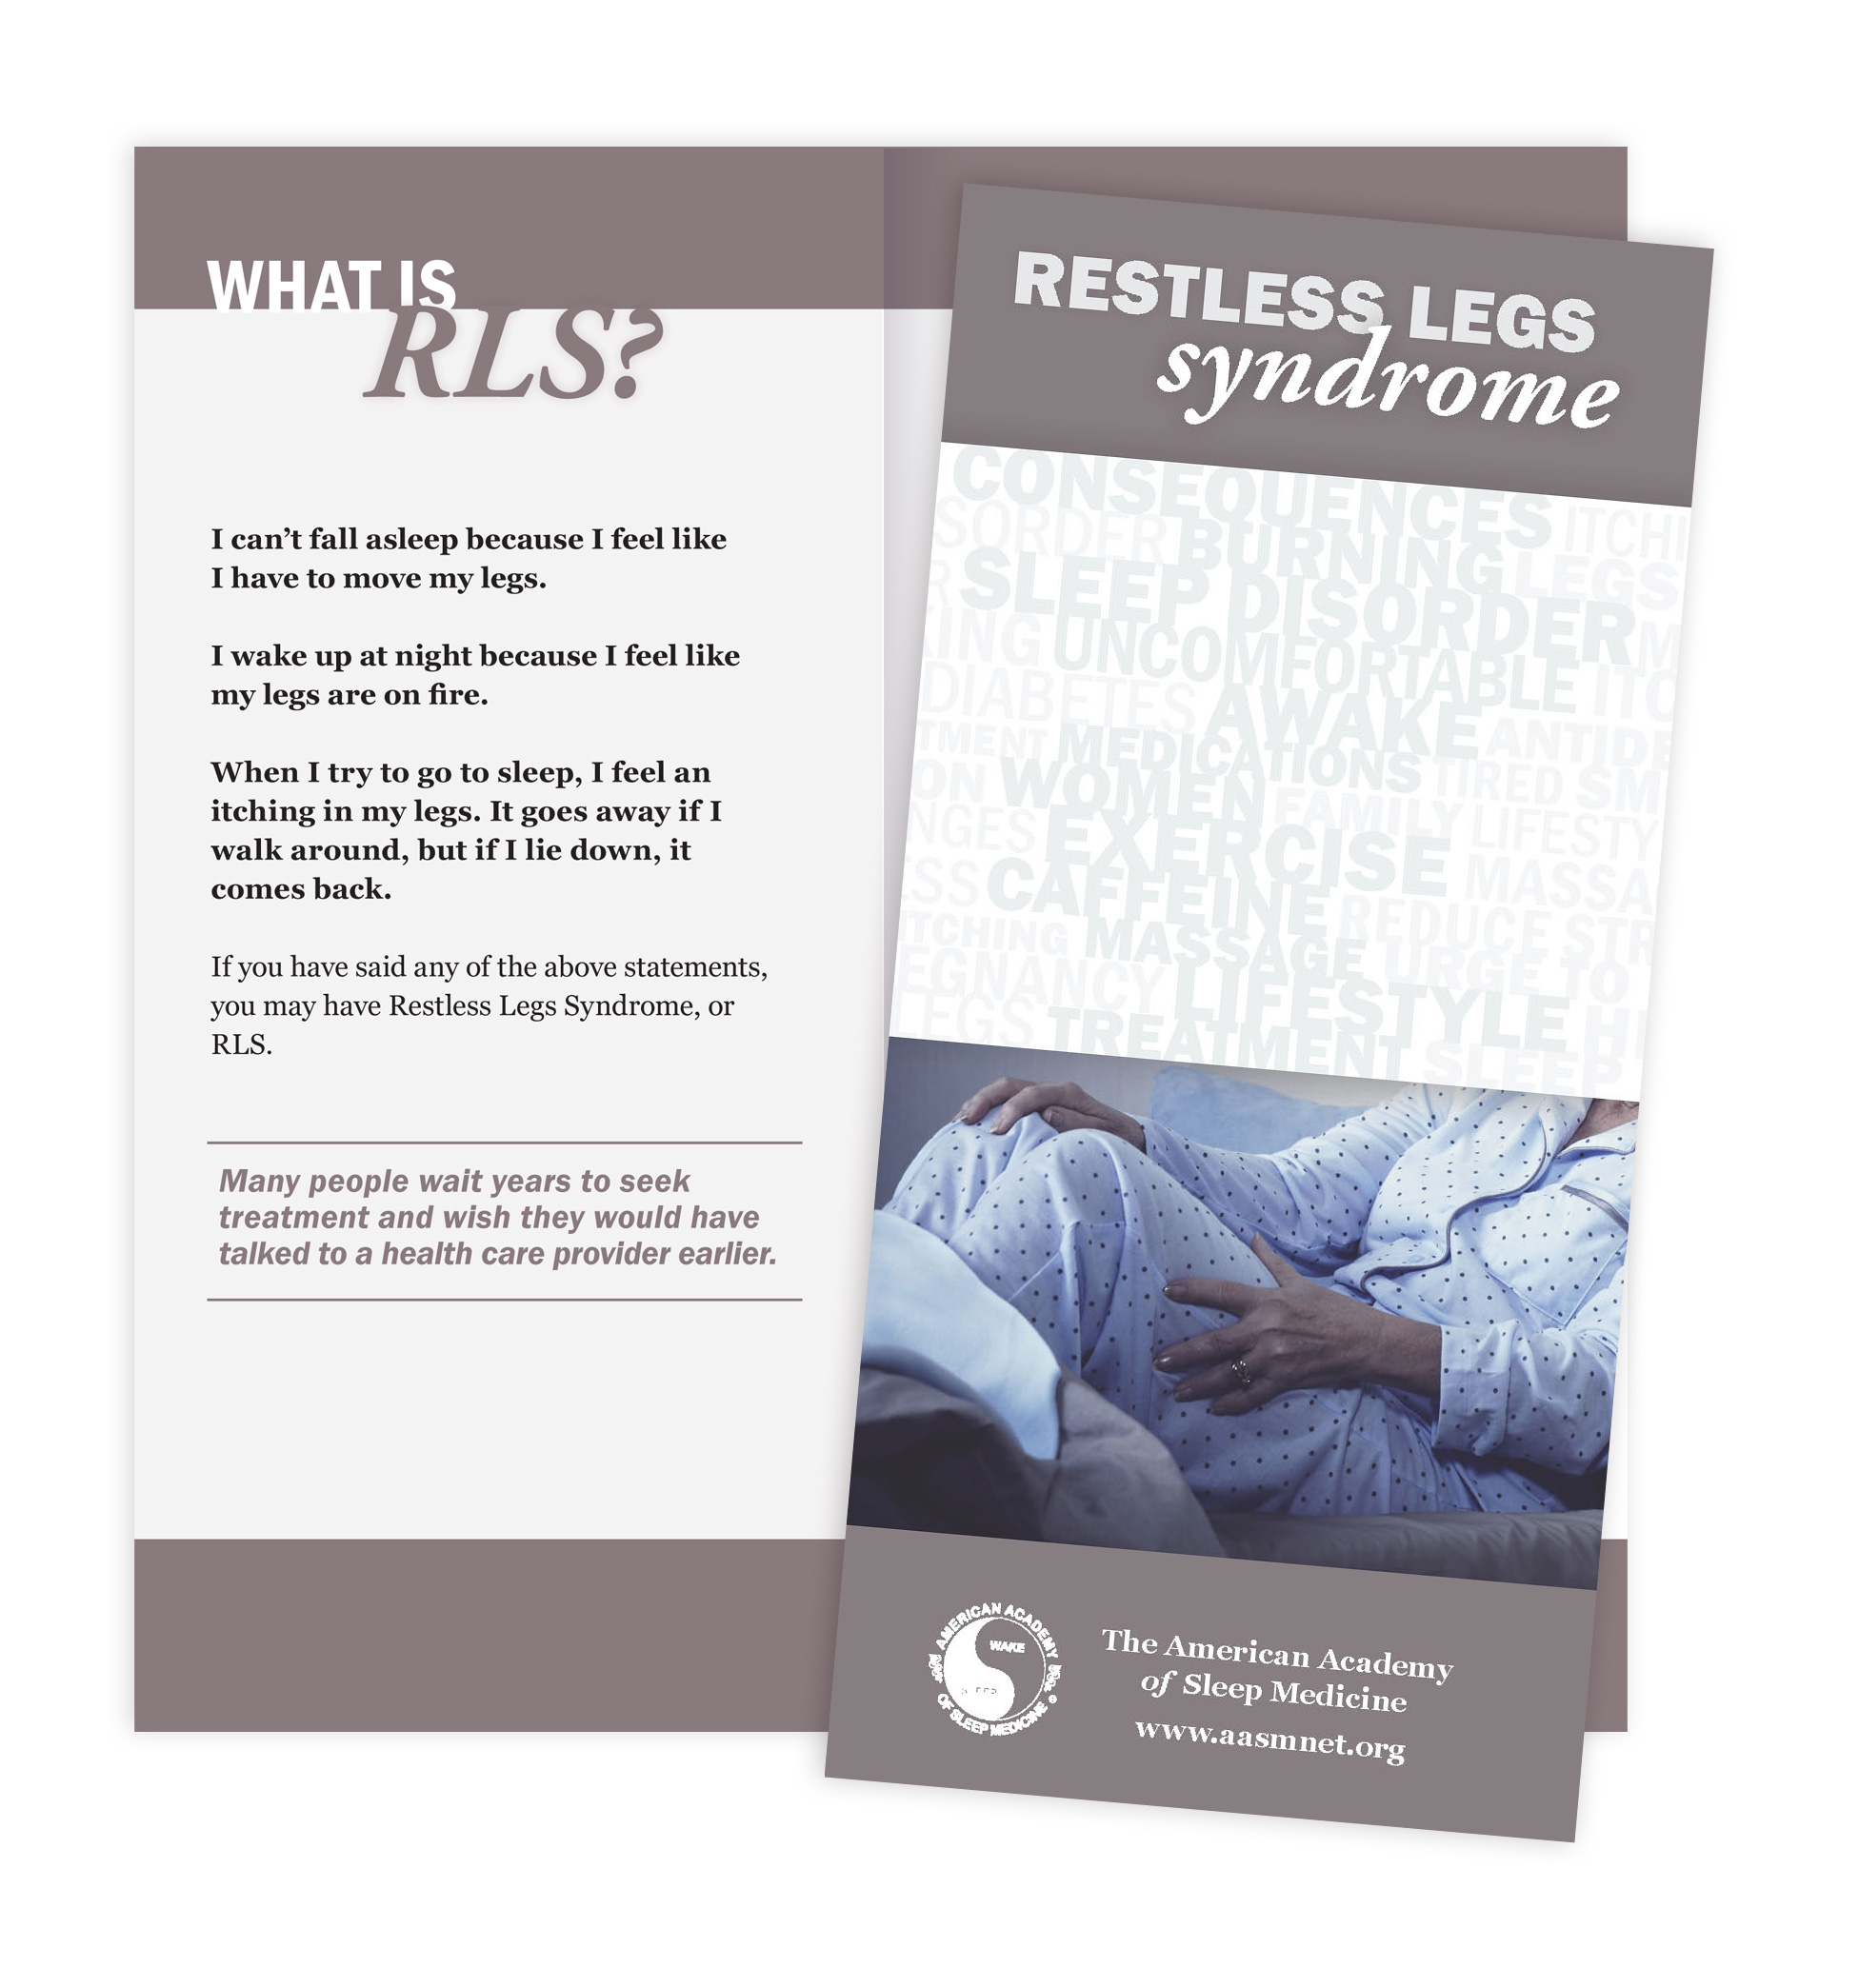 Restless Legs Syndrome Patient Education Brochures (50 brochures)